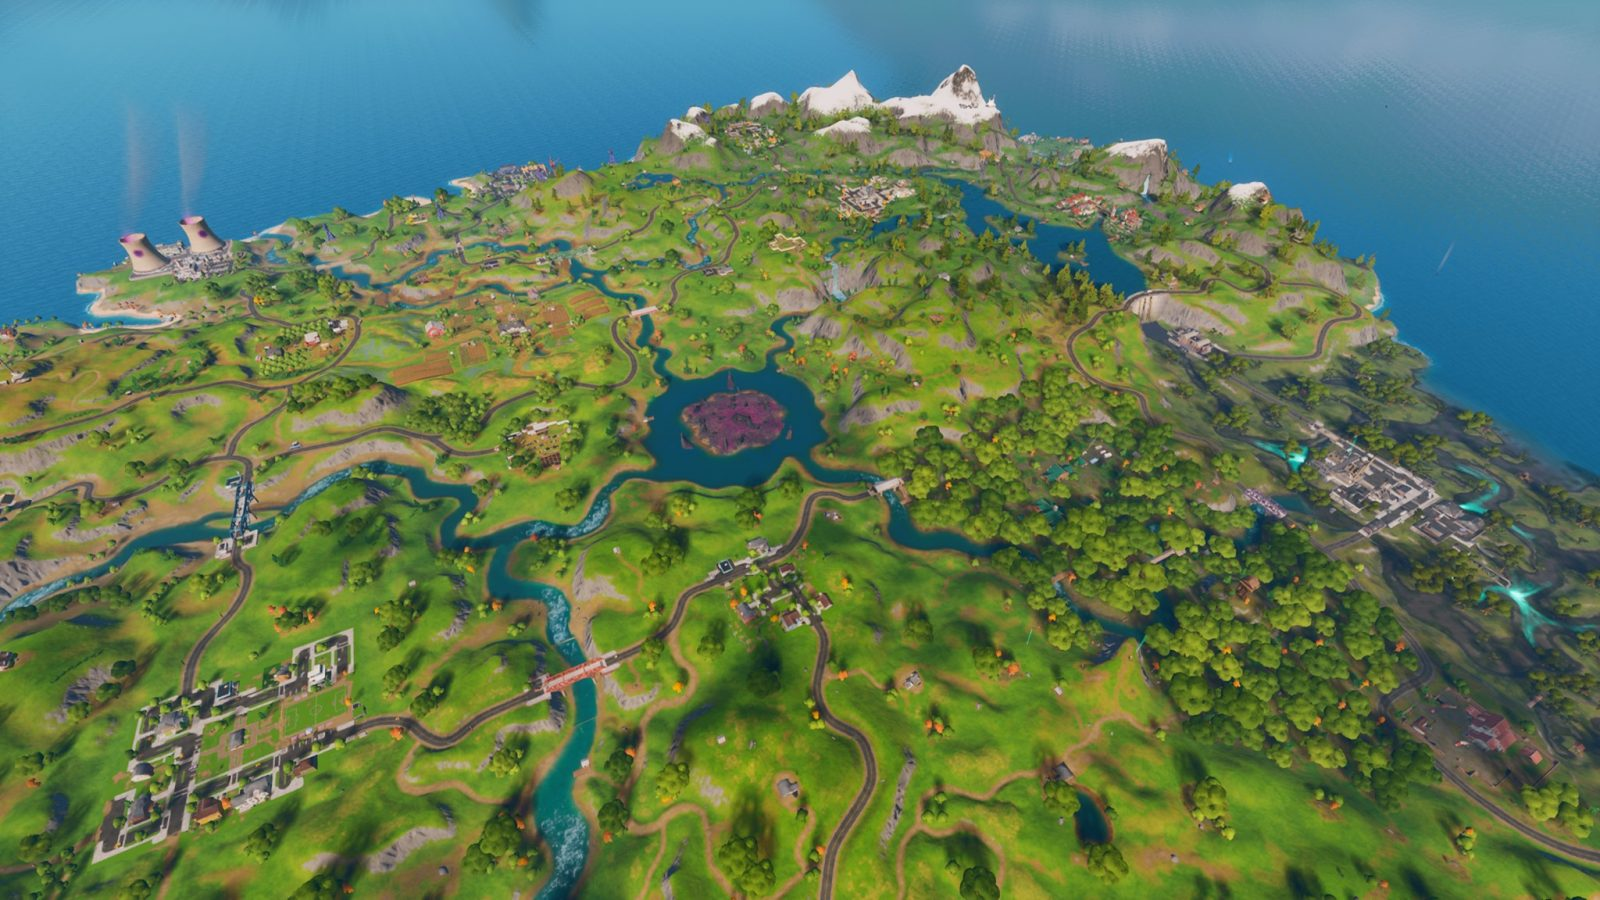 The island has no more fog and jump scare zombies are gone!